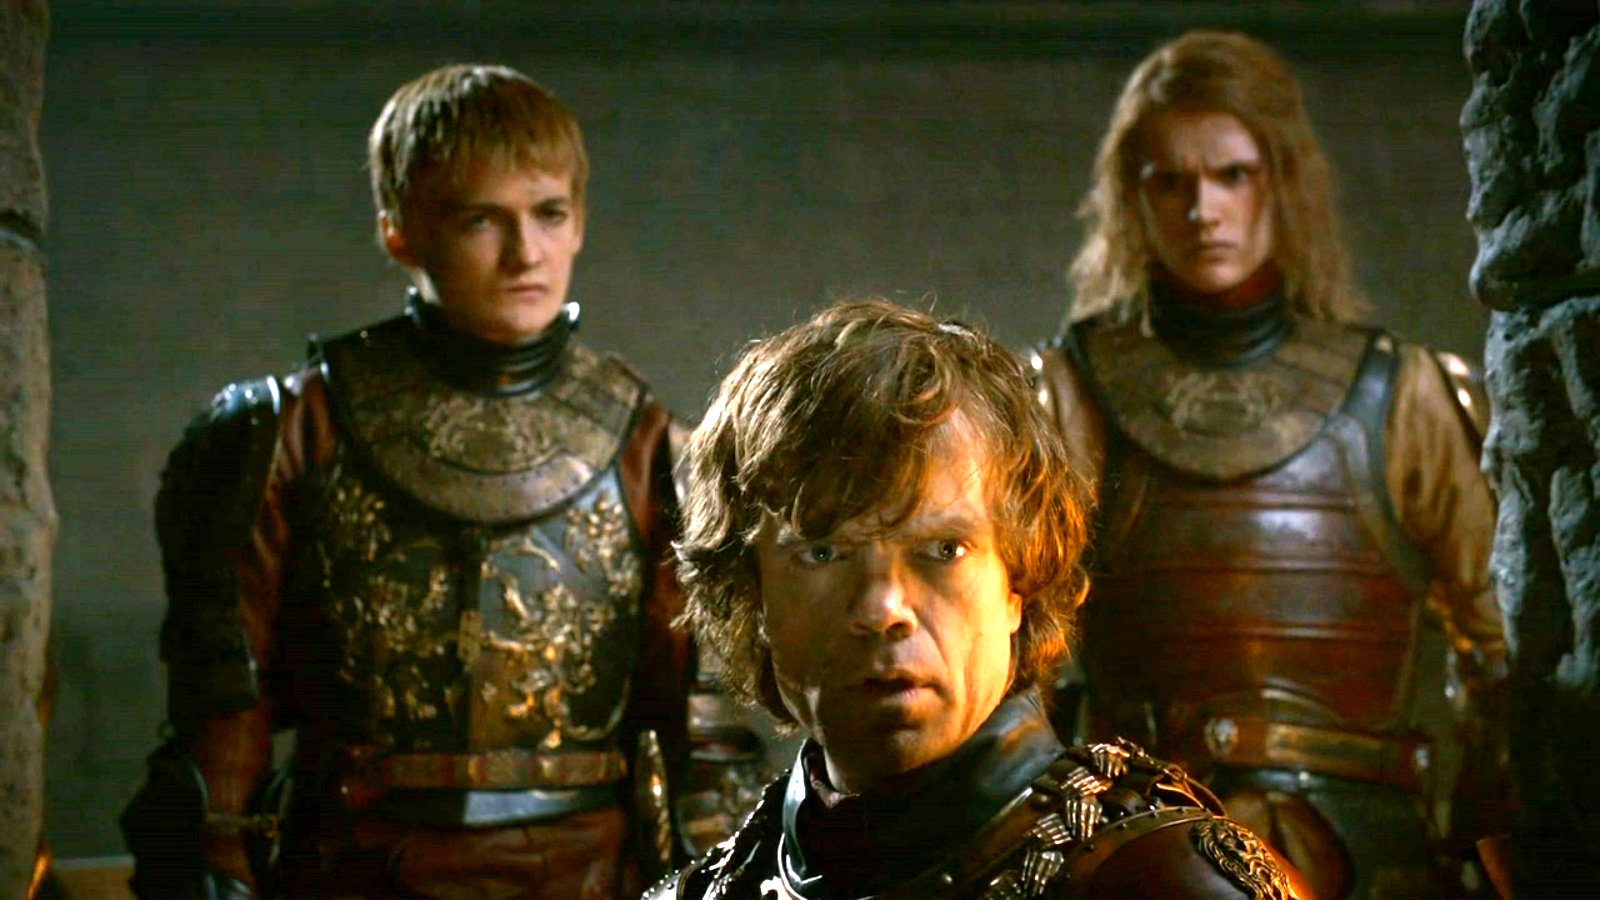 Tyrion and Lancel with Joffrey